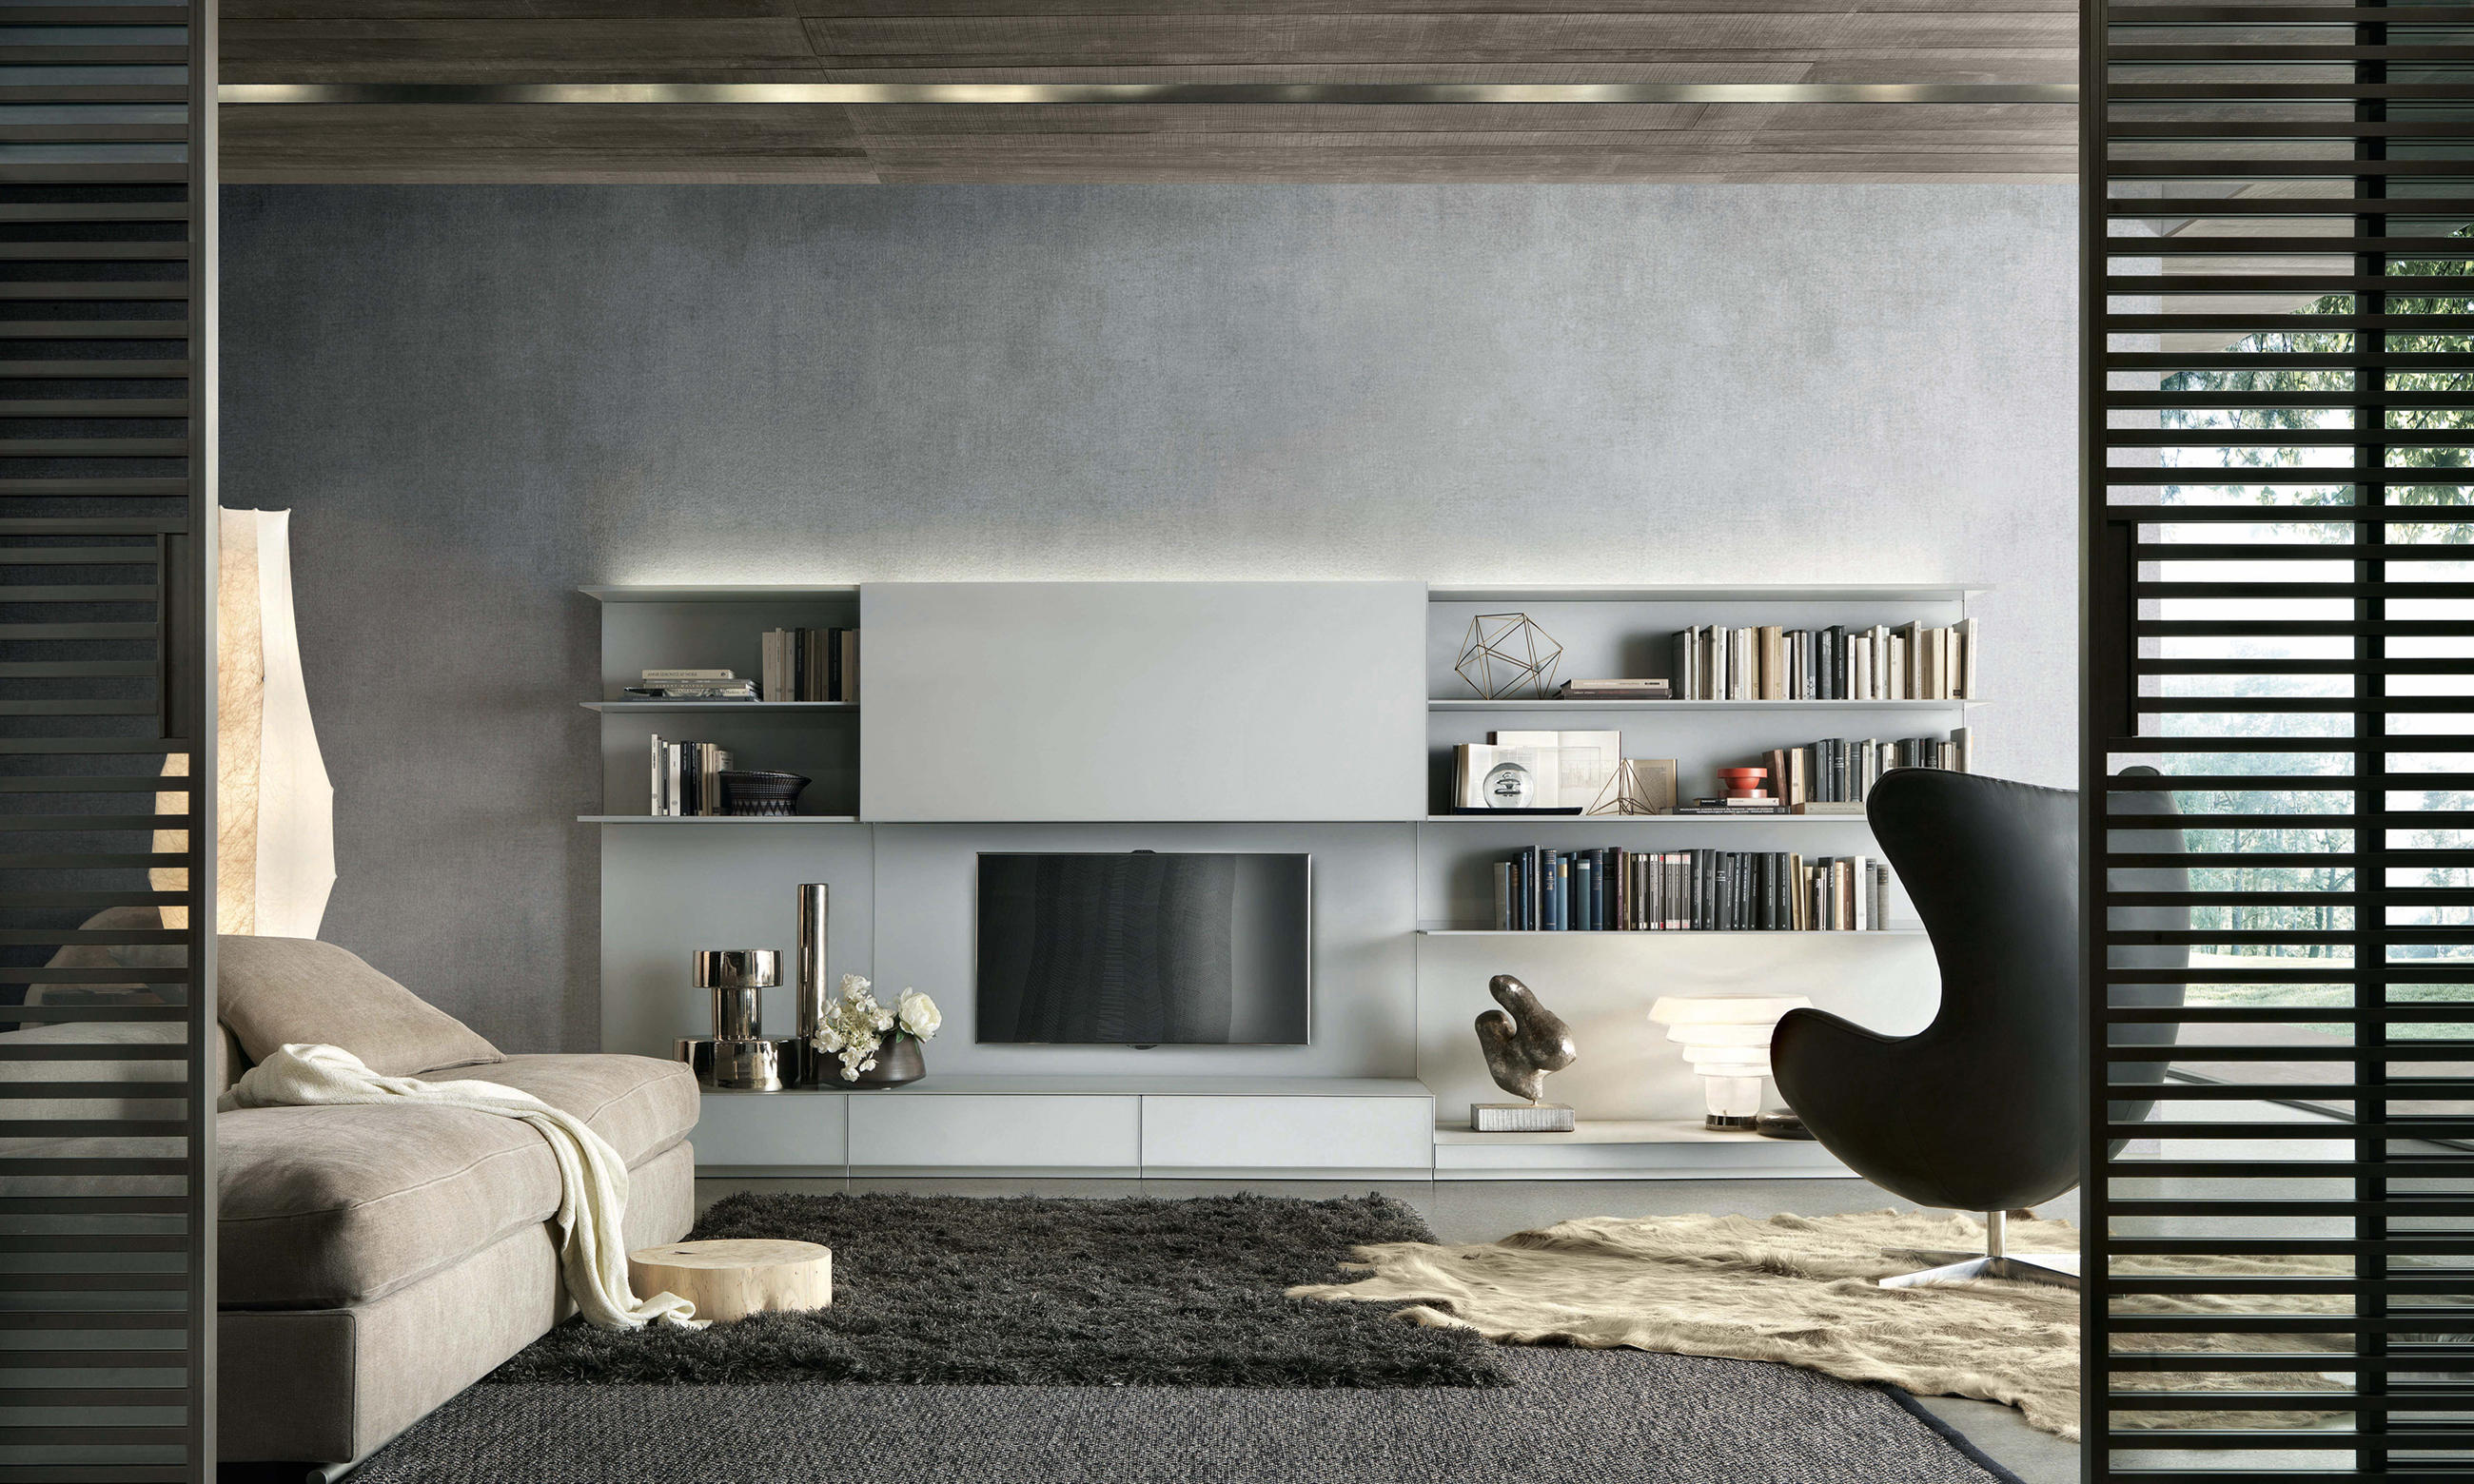 buffet armoire rimadesio moderne annecy